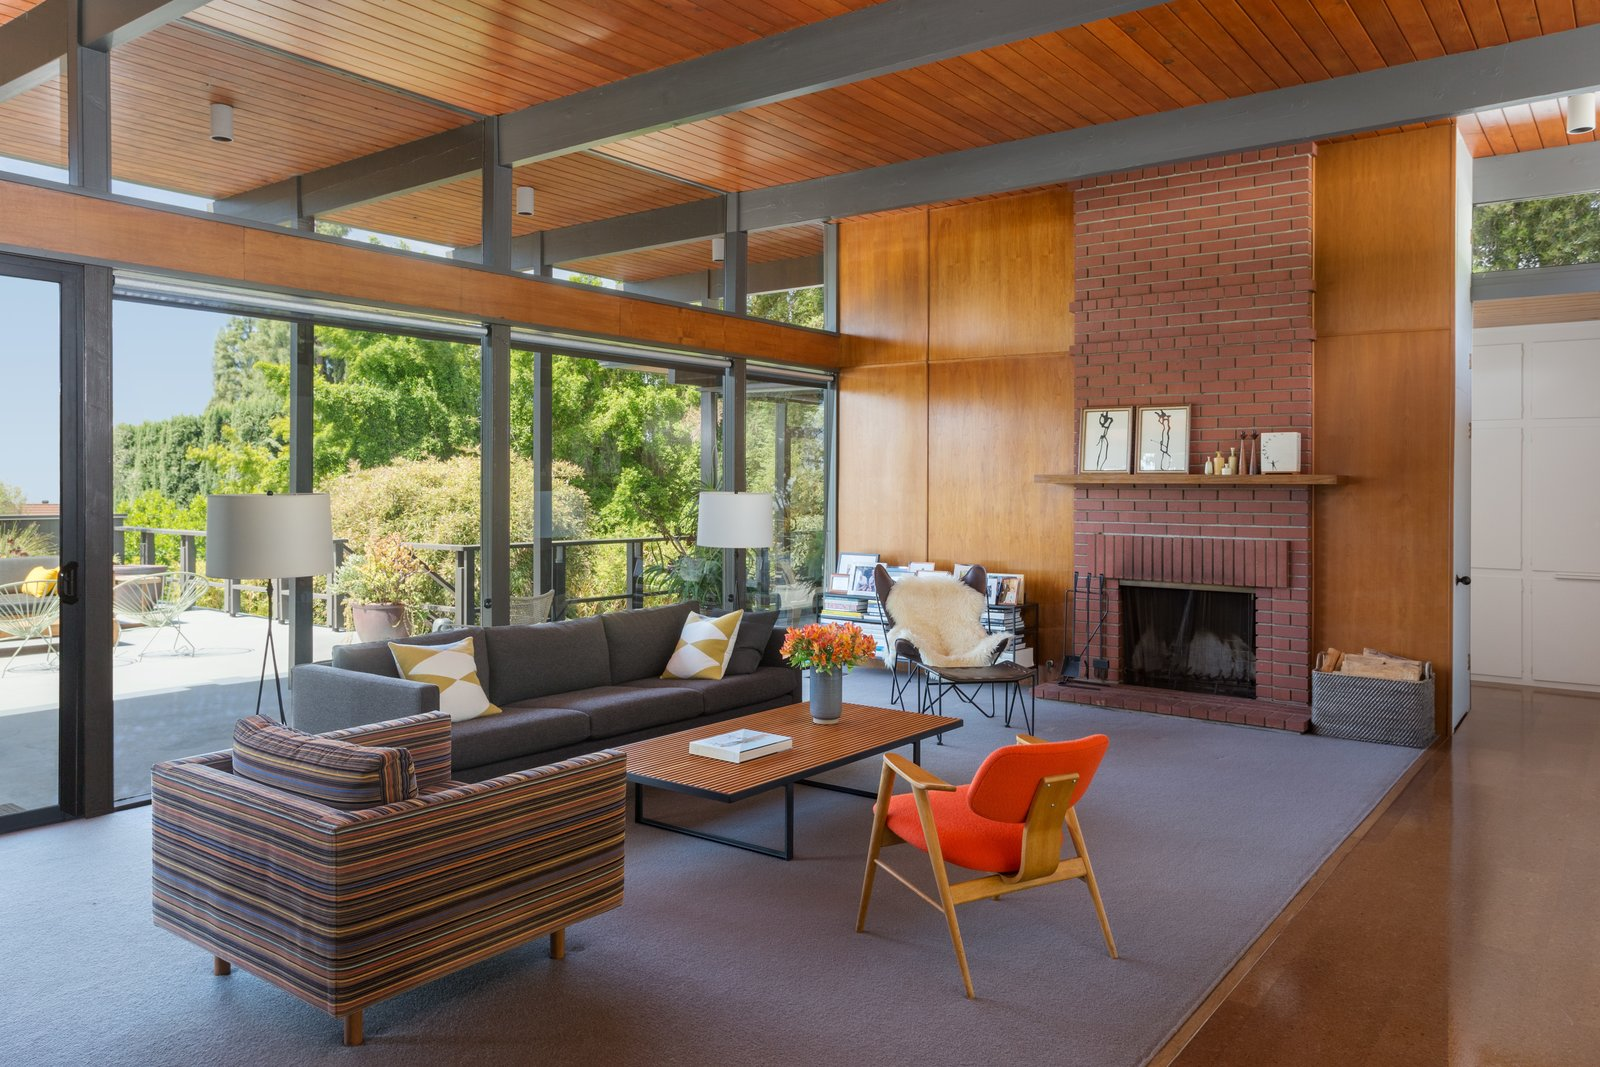 Photo 3 of 12 in This Post-and-Beam in Pasadena Offers Classic California Living For $1.9M